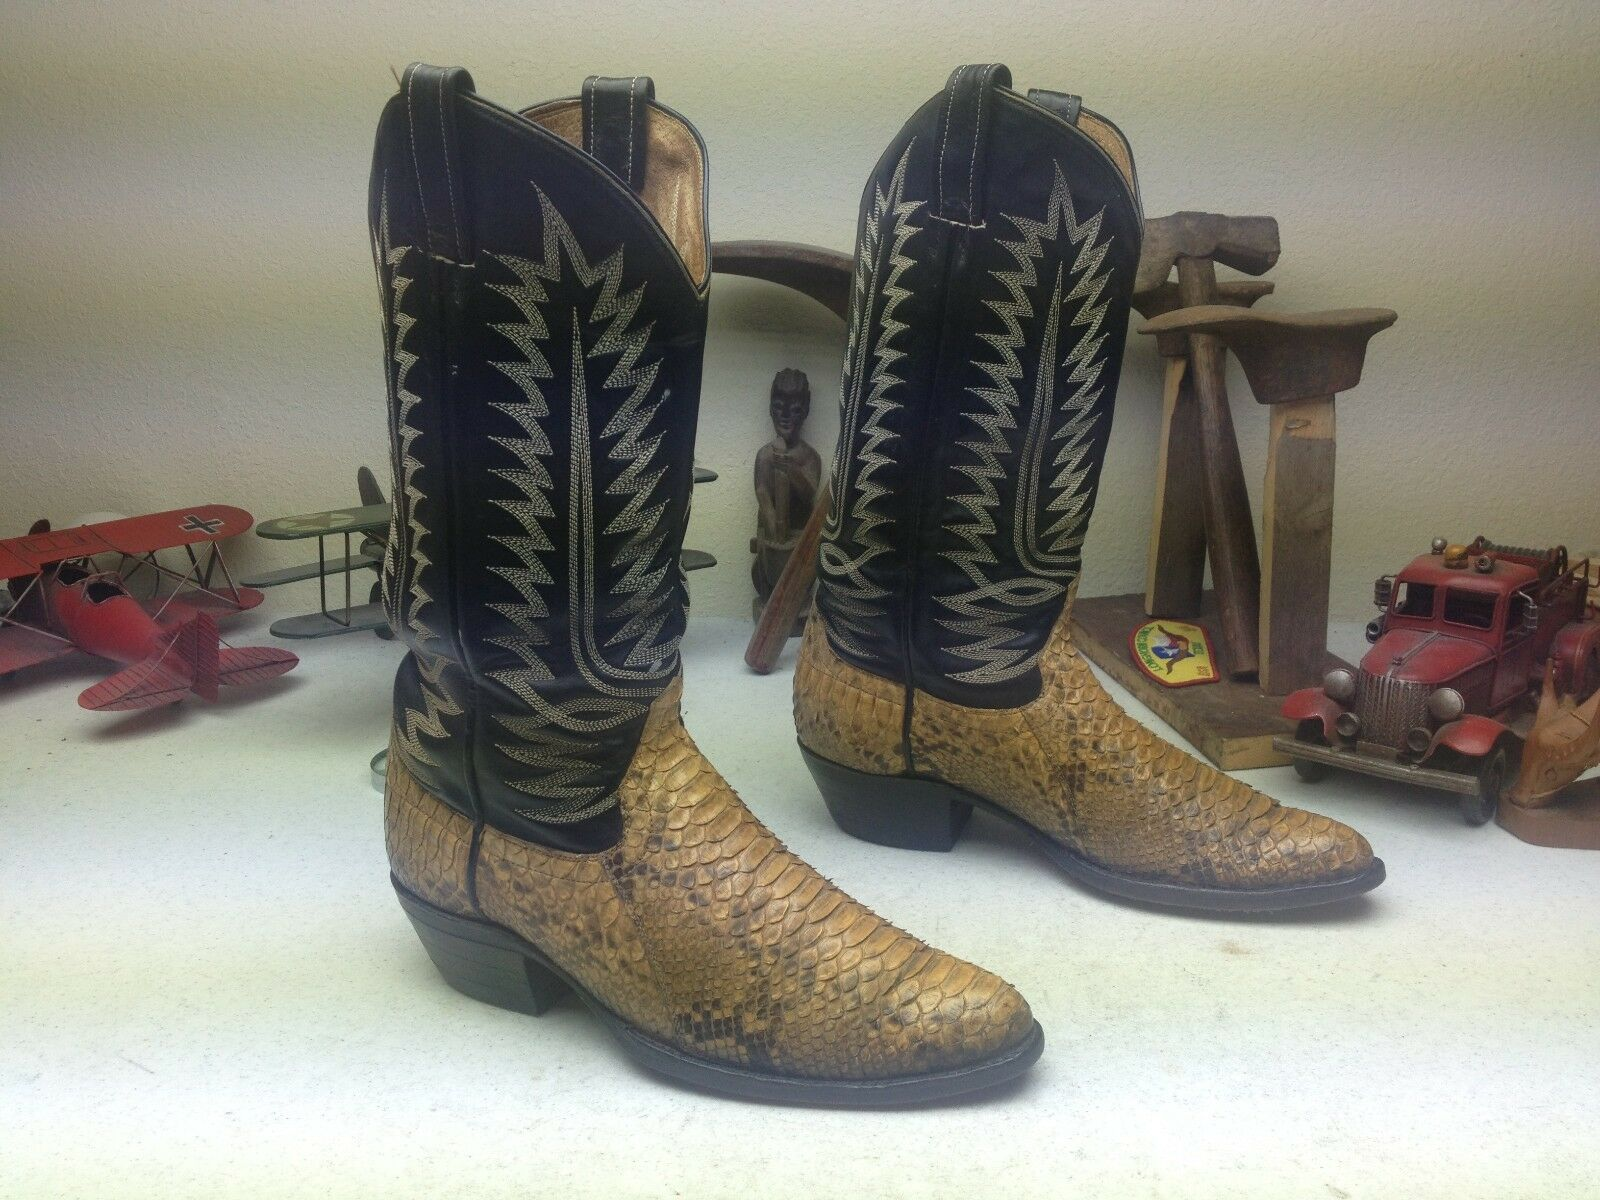 BUTTER C TOM BOSS SNAKESKIN WESTERN COWBOY DISTRESSED ENGINEER TRAIL BOSS TOM BOOTS 27.5 45f3c2